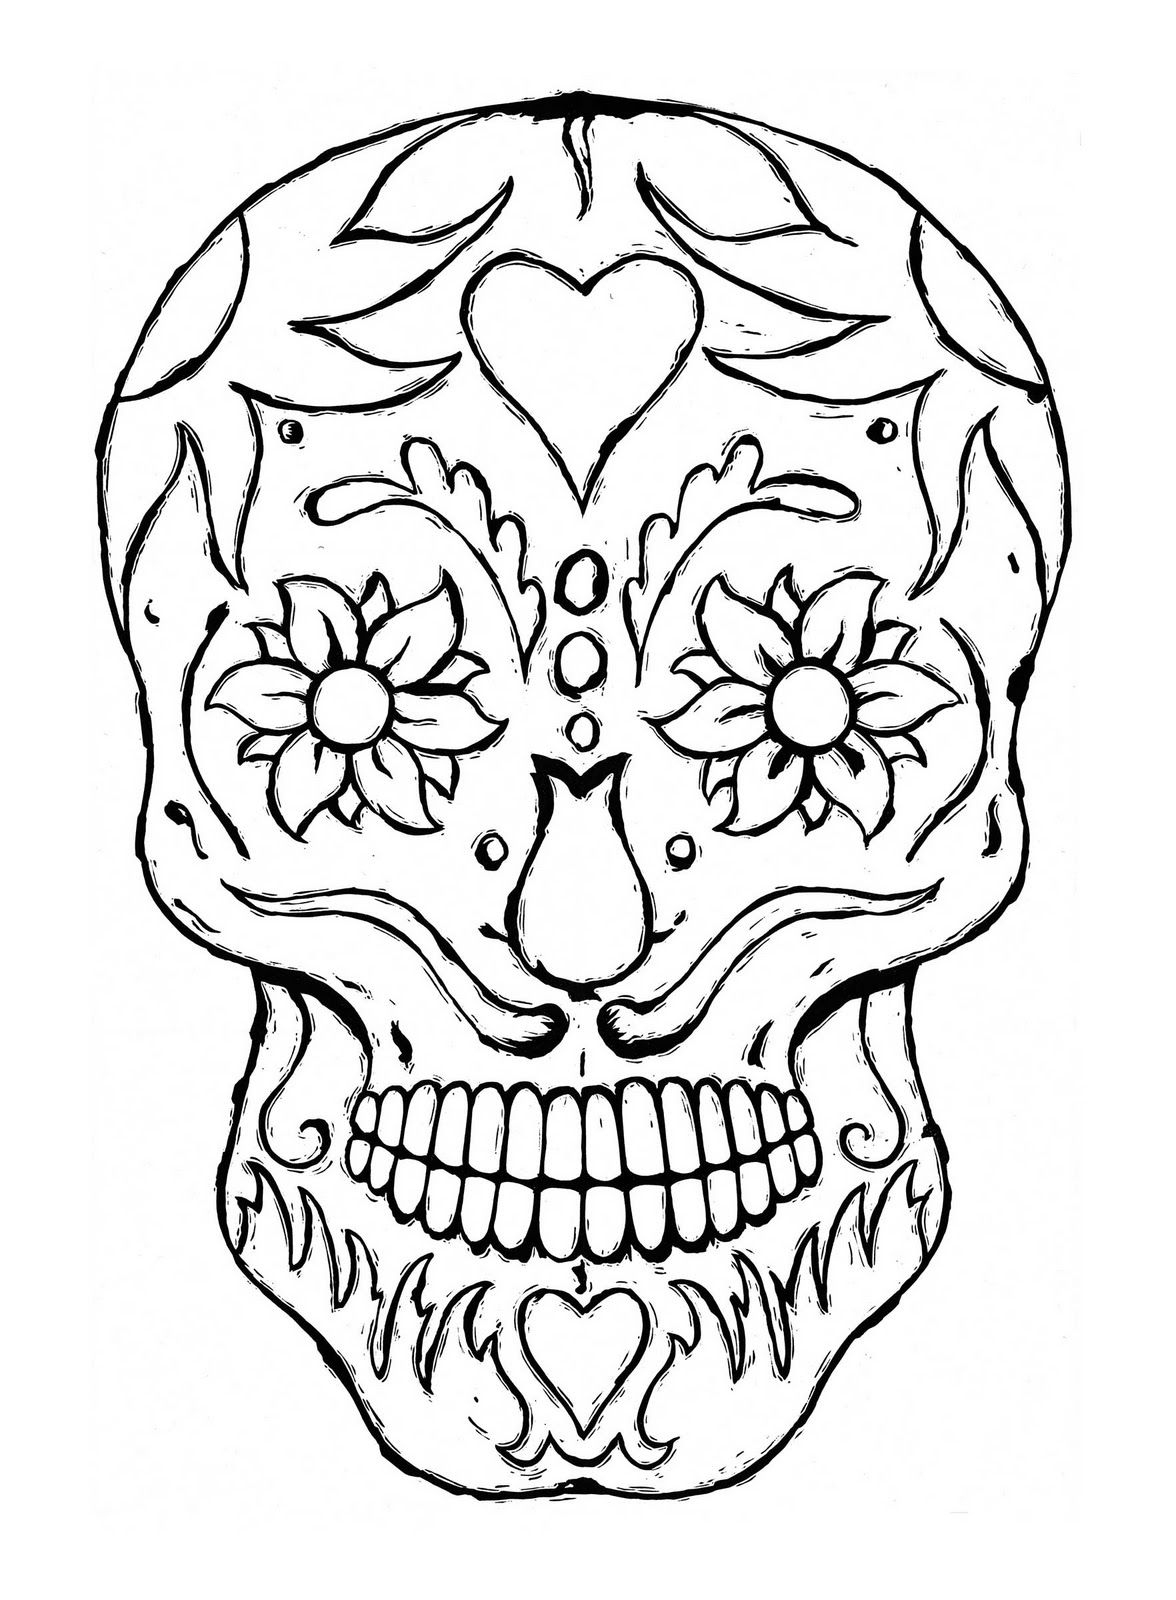 Coloring Pages Printable Skull Coloring Pages free printable skull coloring pages for kids sugar pages